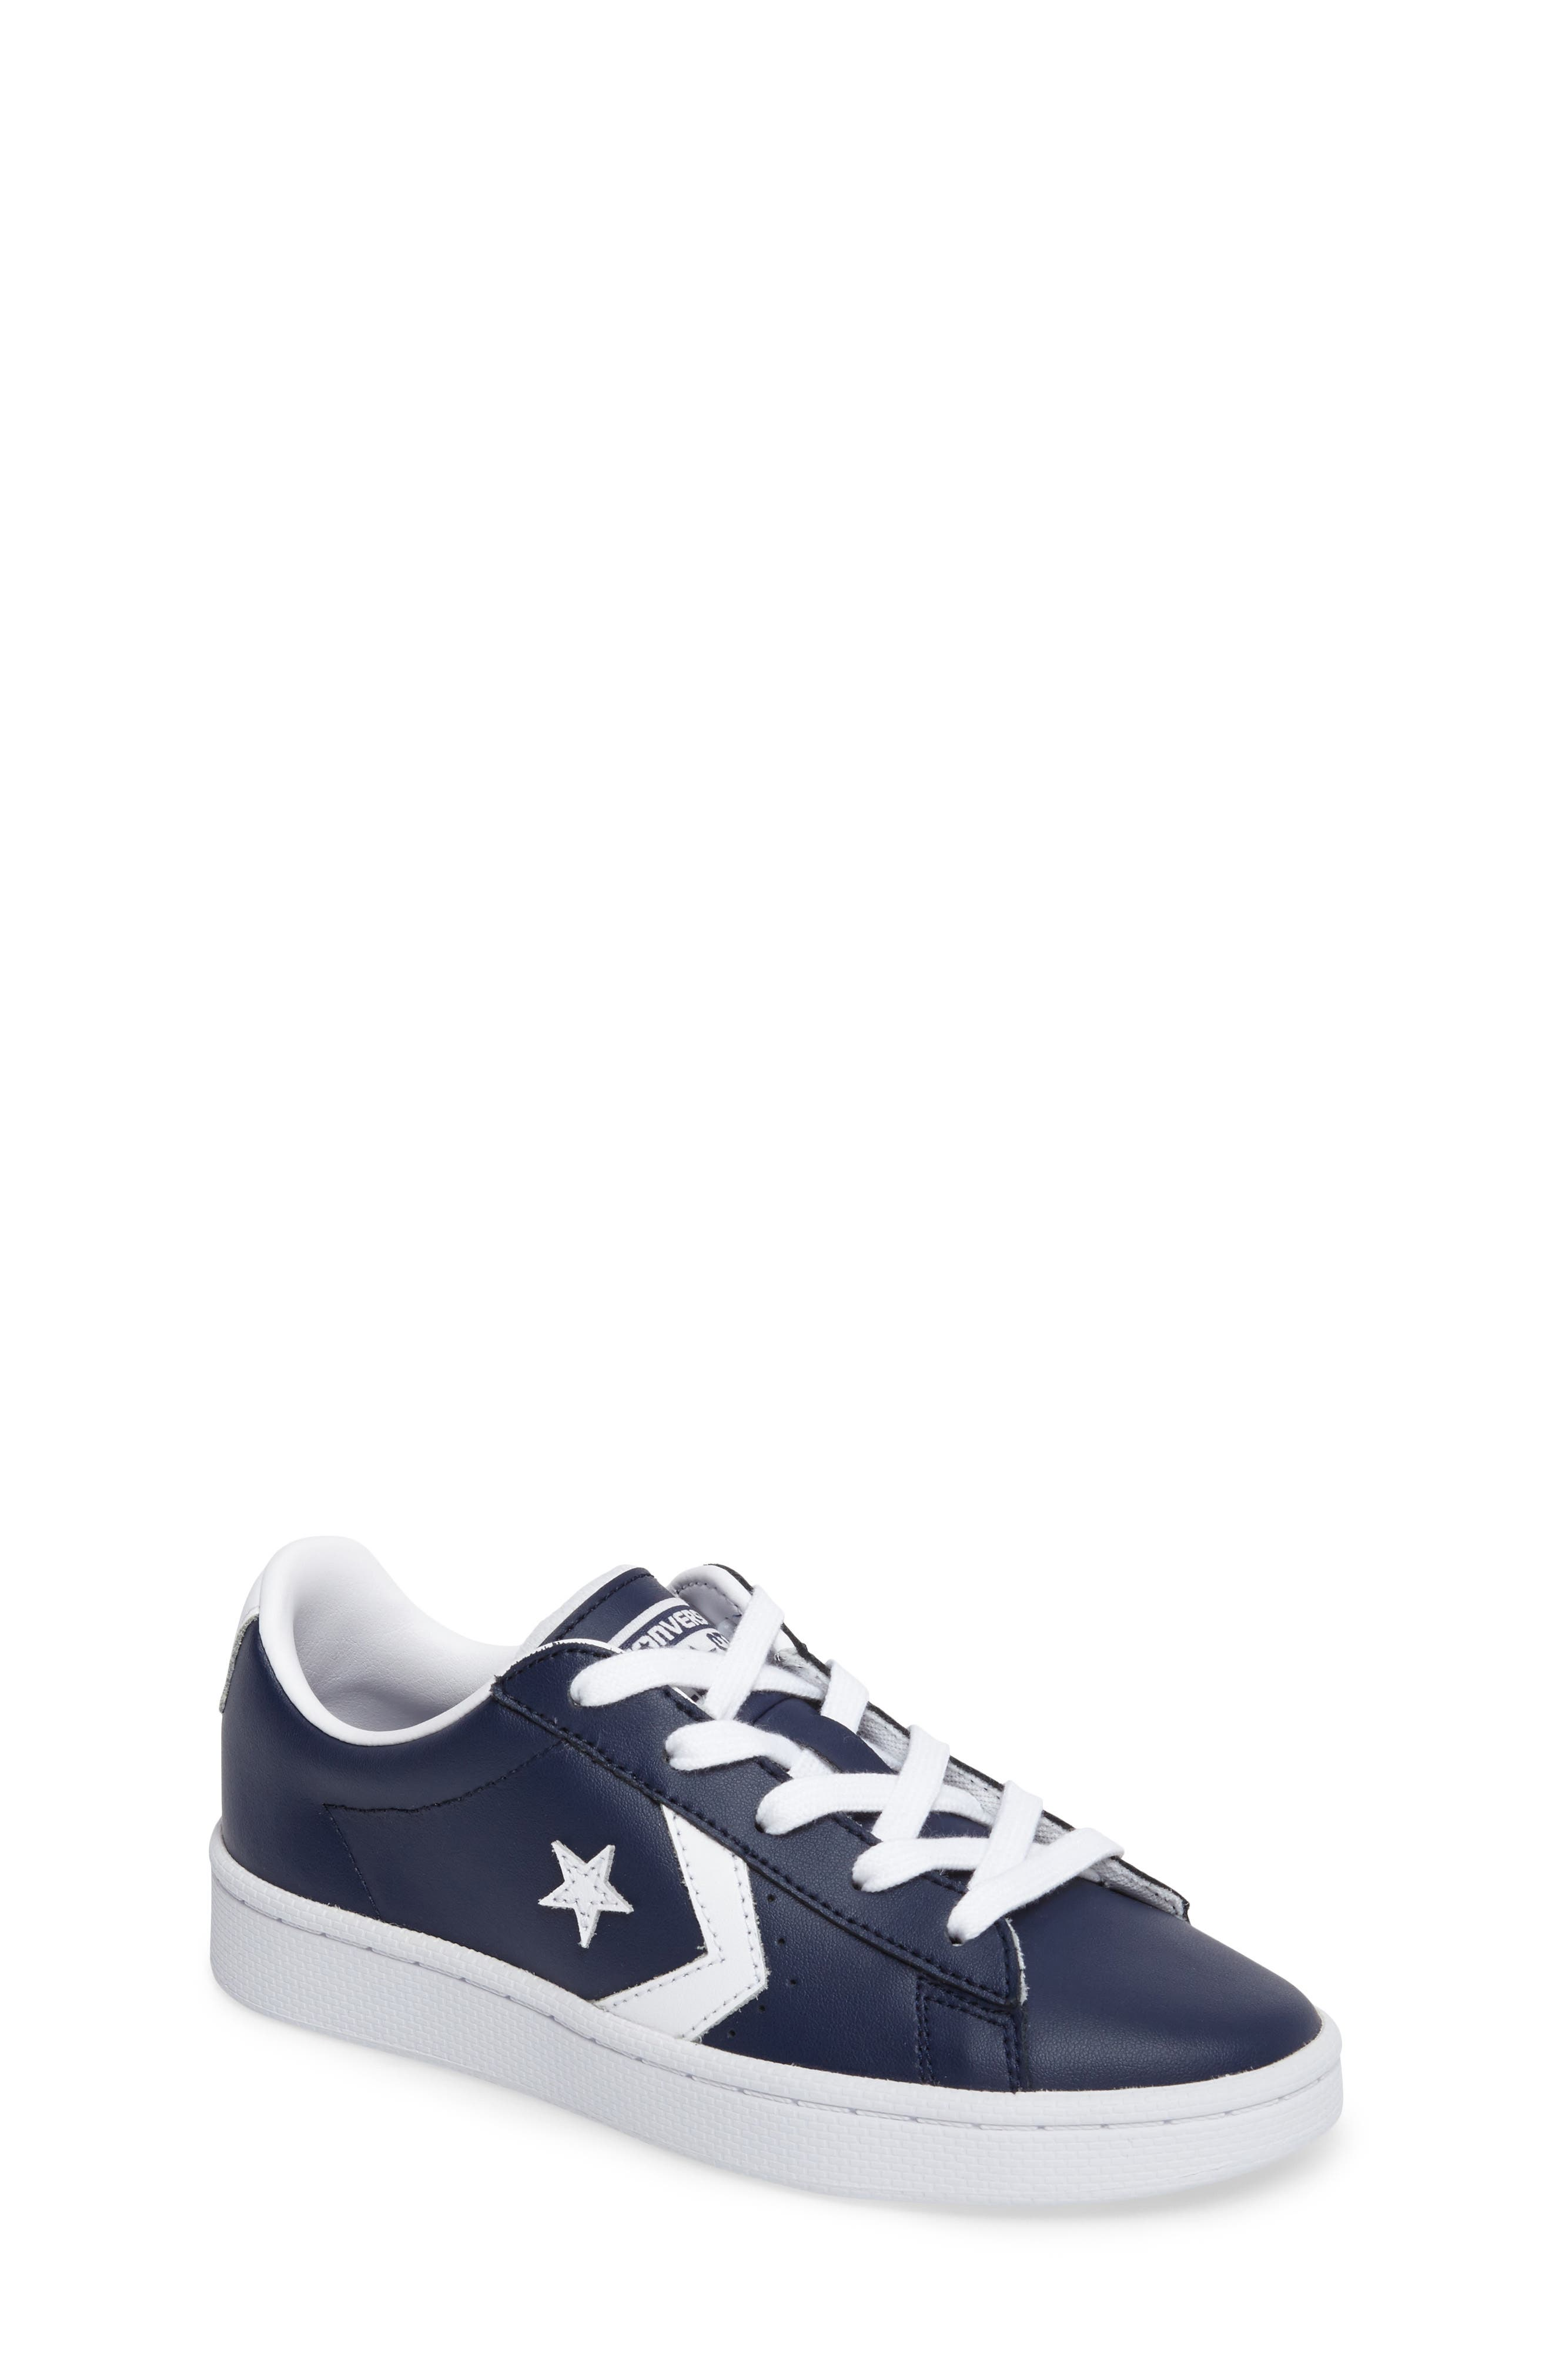 Alternate Image 1 Selected - Converse All Star® Pro Leather Low Top Sneaker (Toddler & Little Kid)